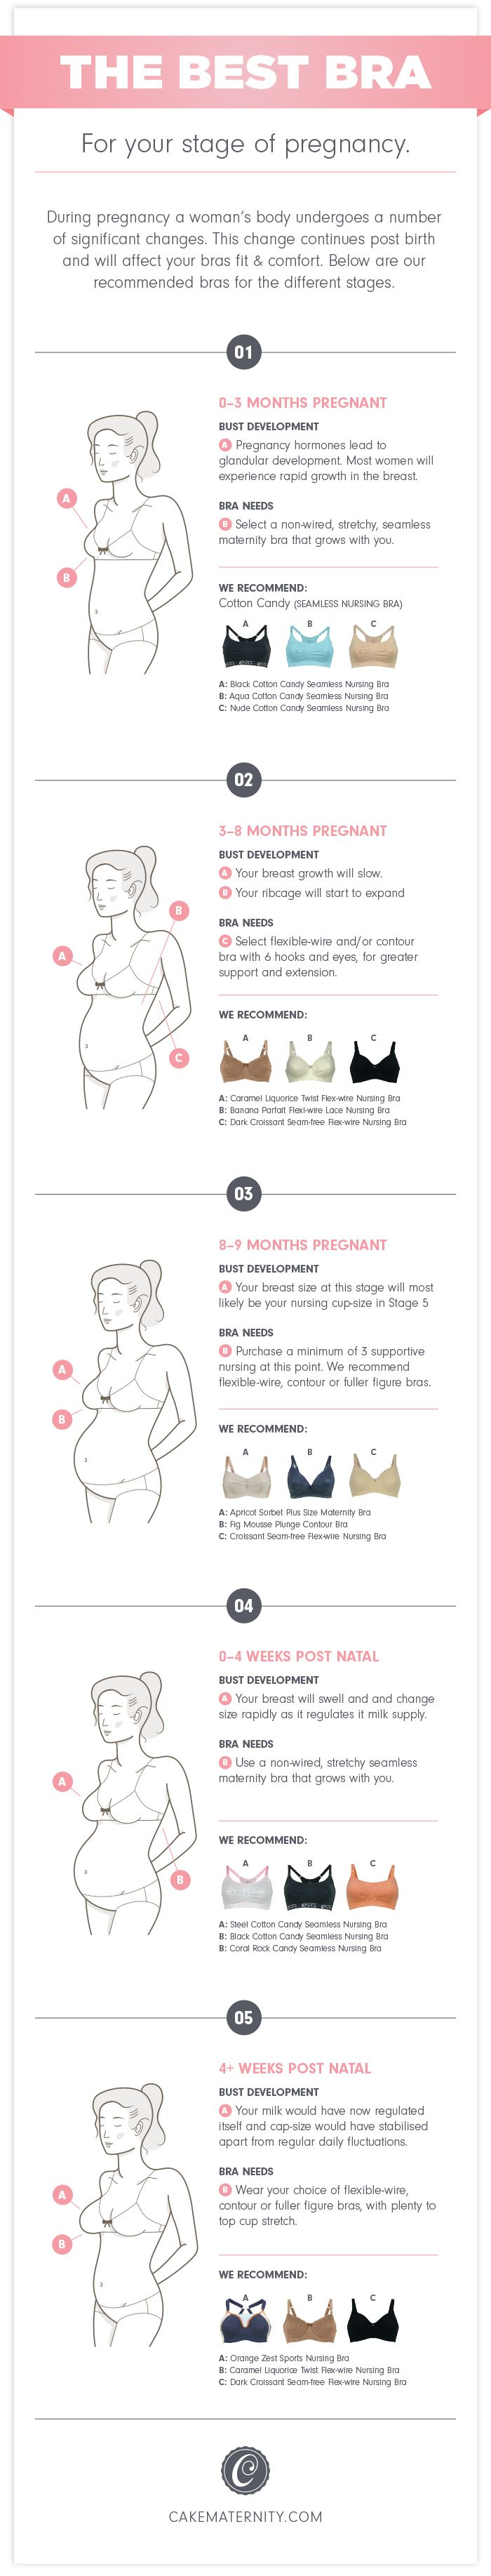 bras-for-stages-infographic